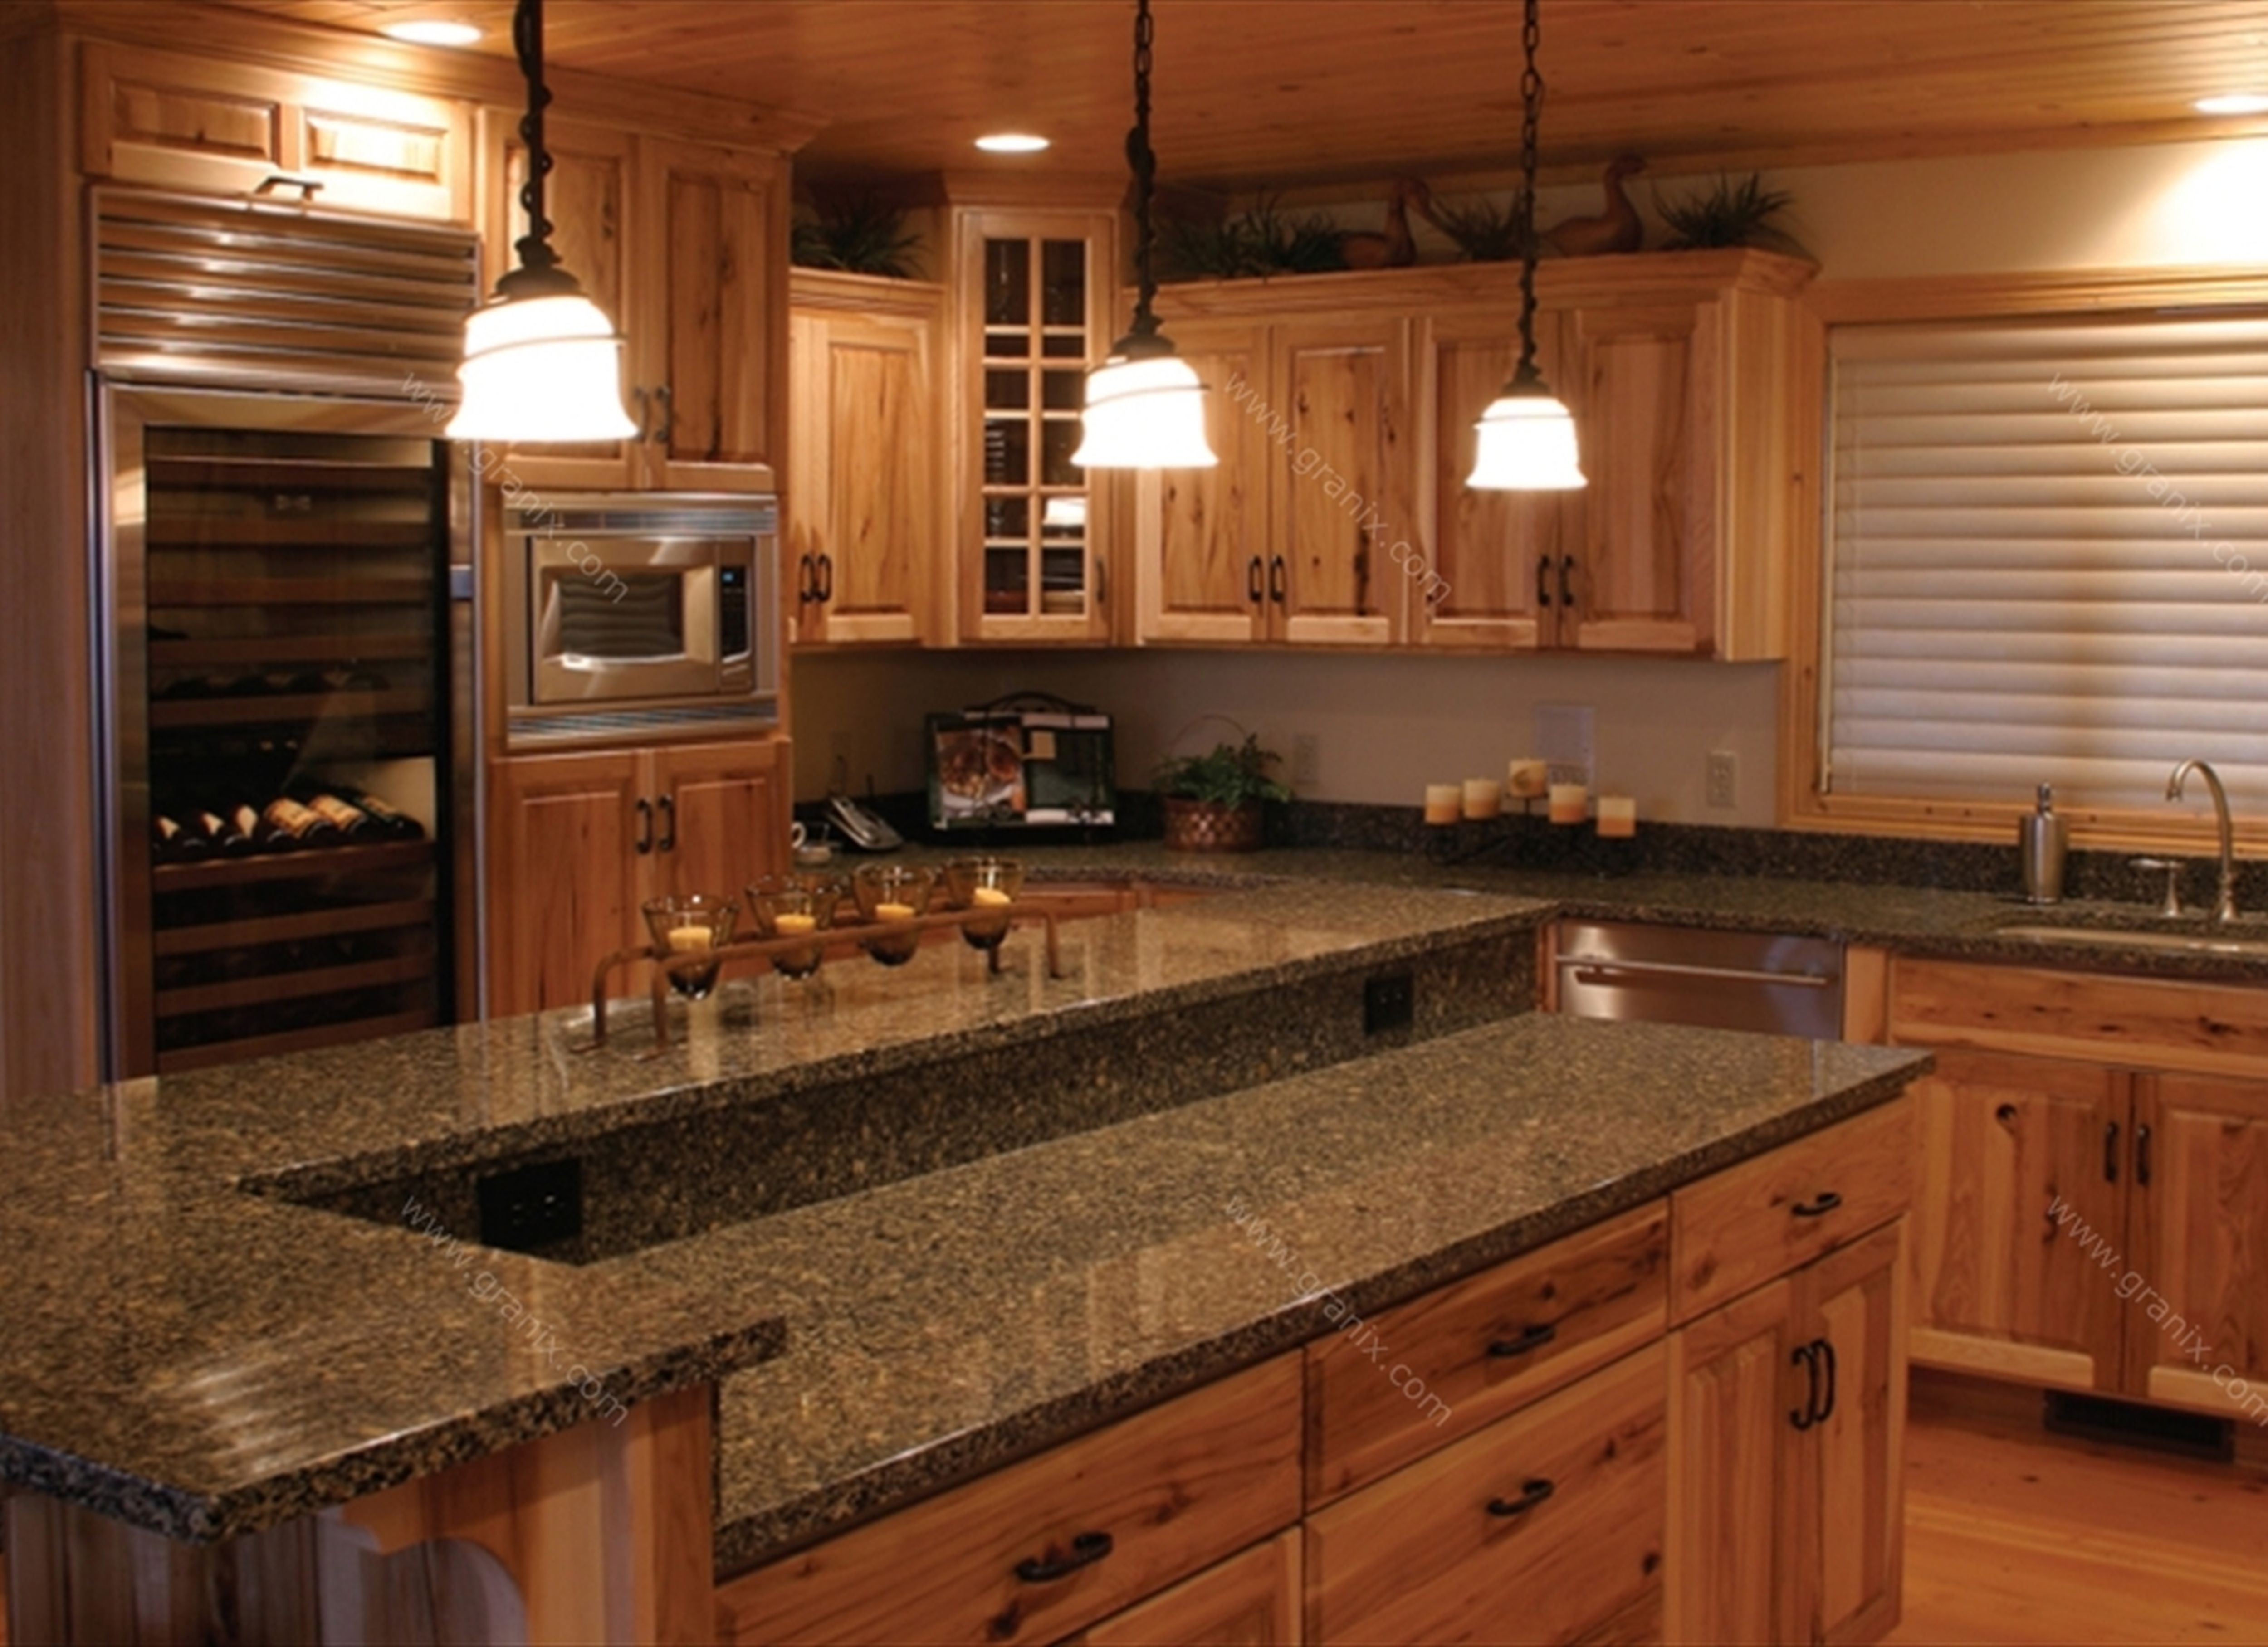 Cozy Lowes Quartz Countertops for Your Kitchen Design ...